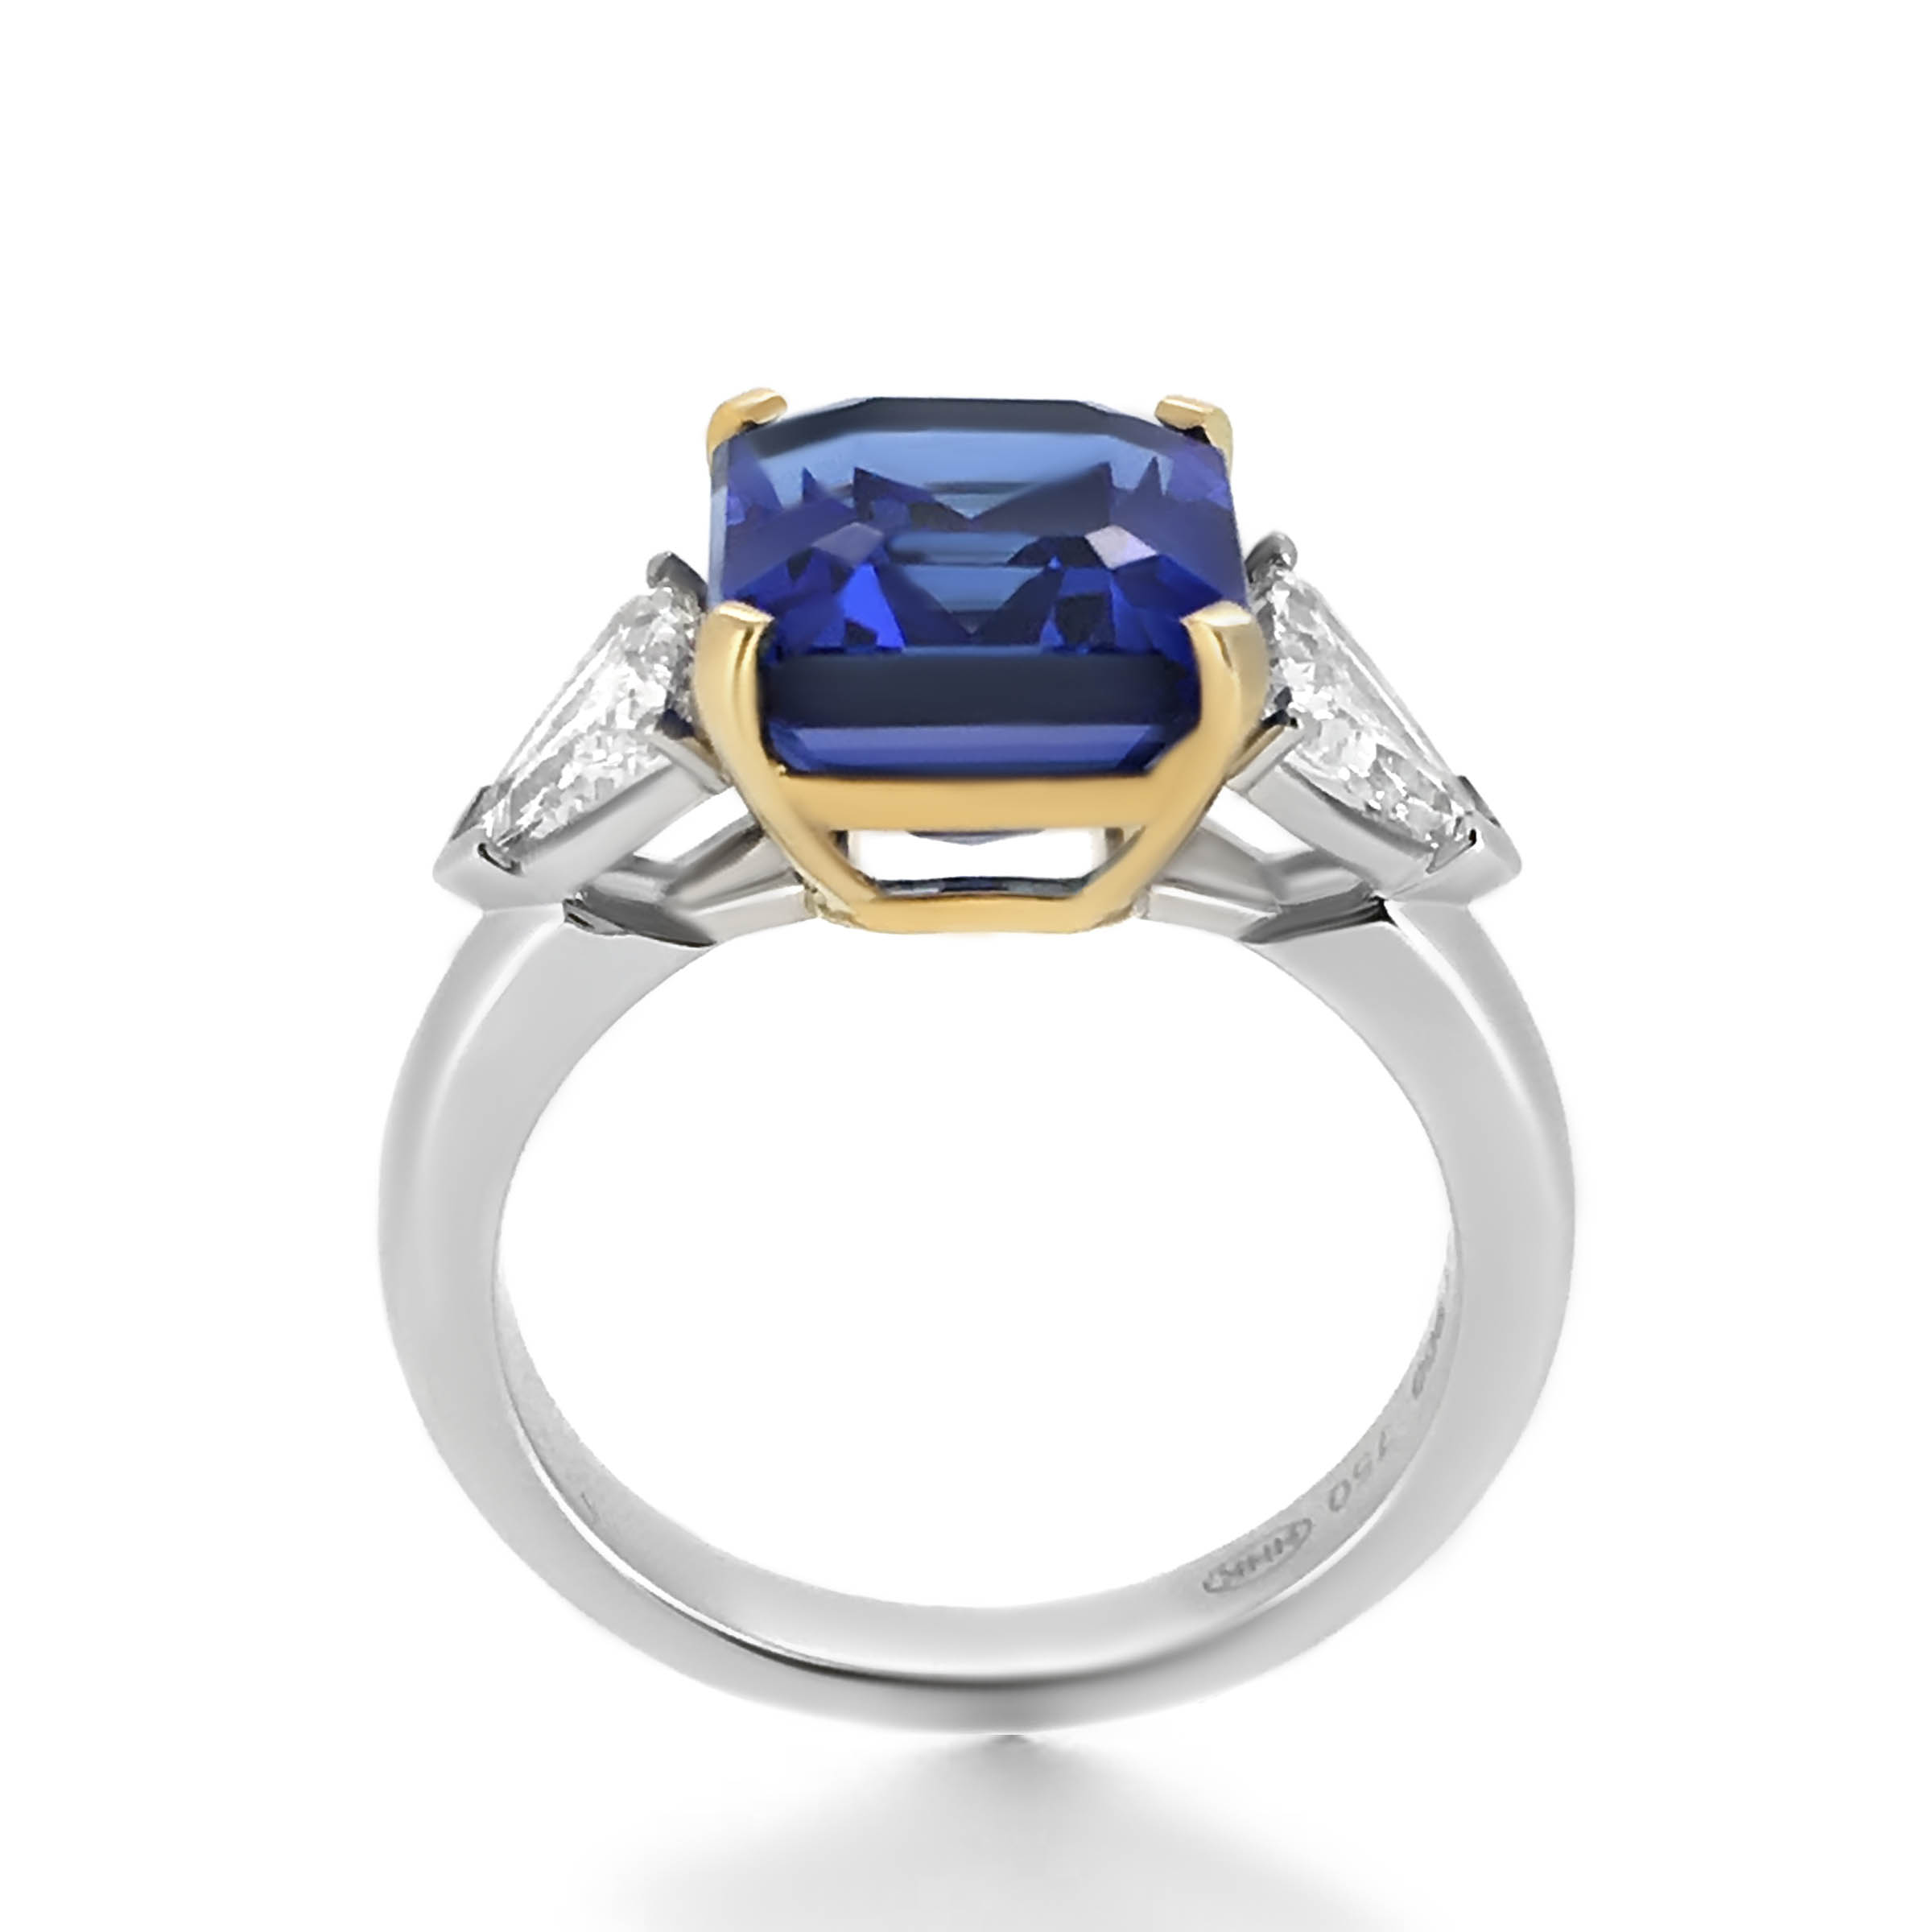 own design three engagement ring tanzanite your trilliant bpid stone cut tz trillion gold yellow